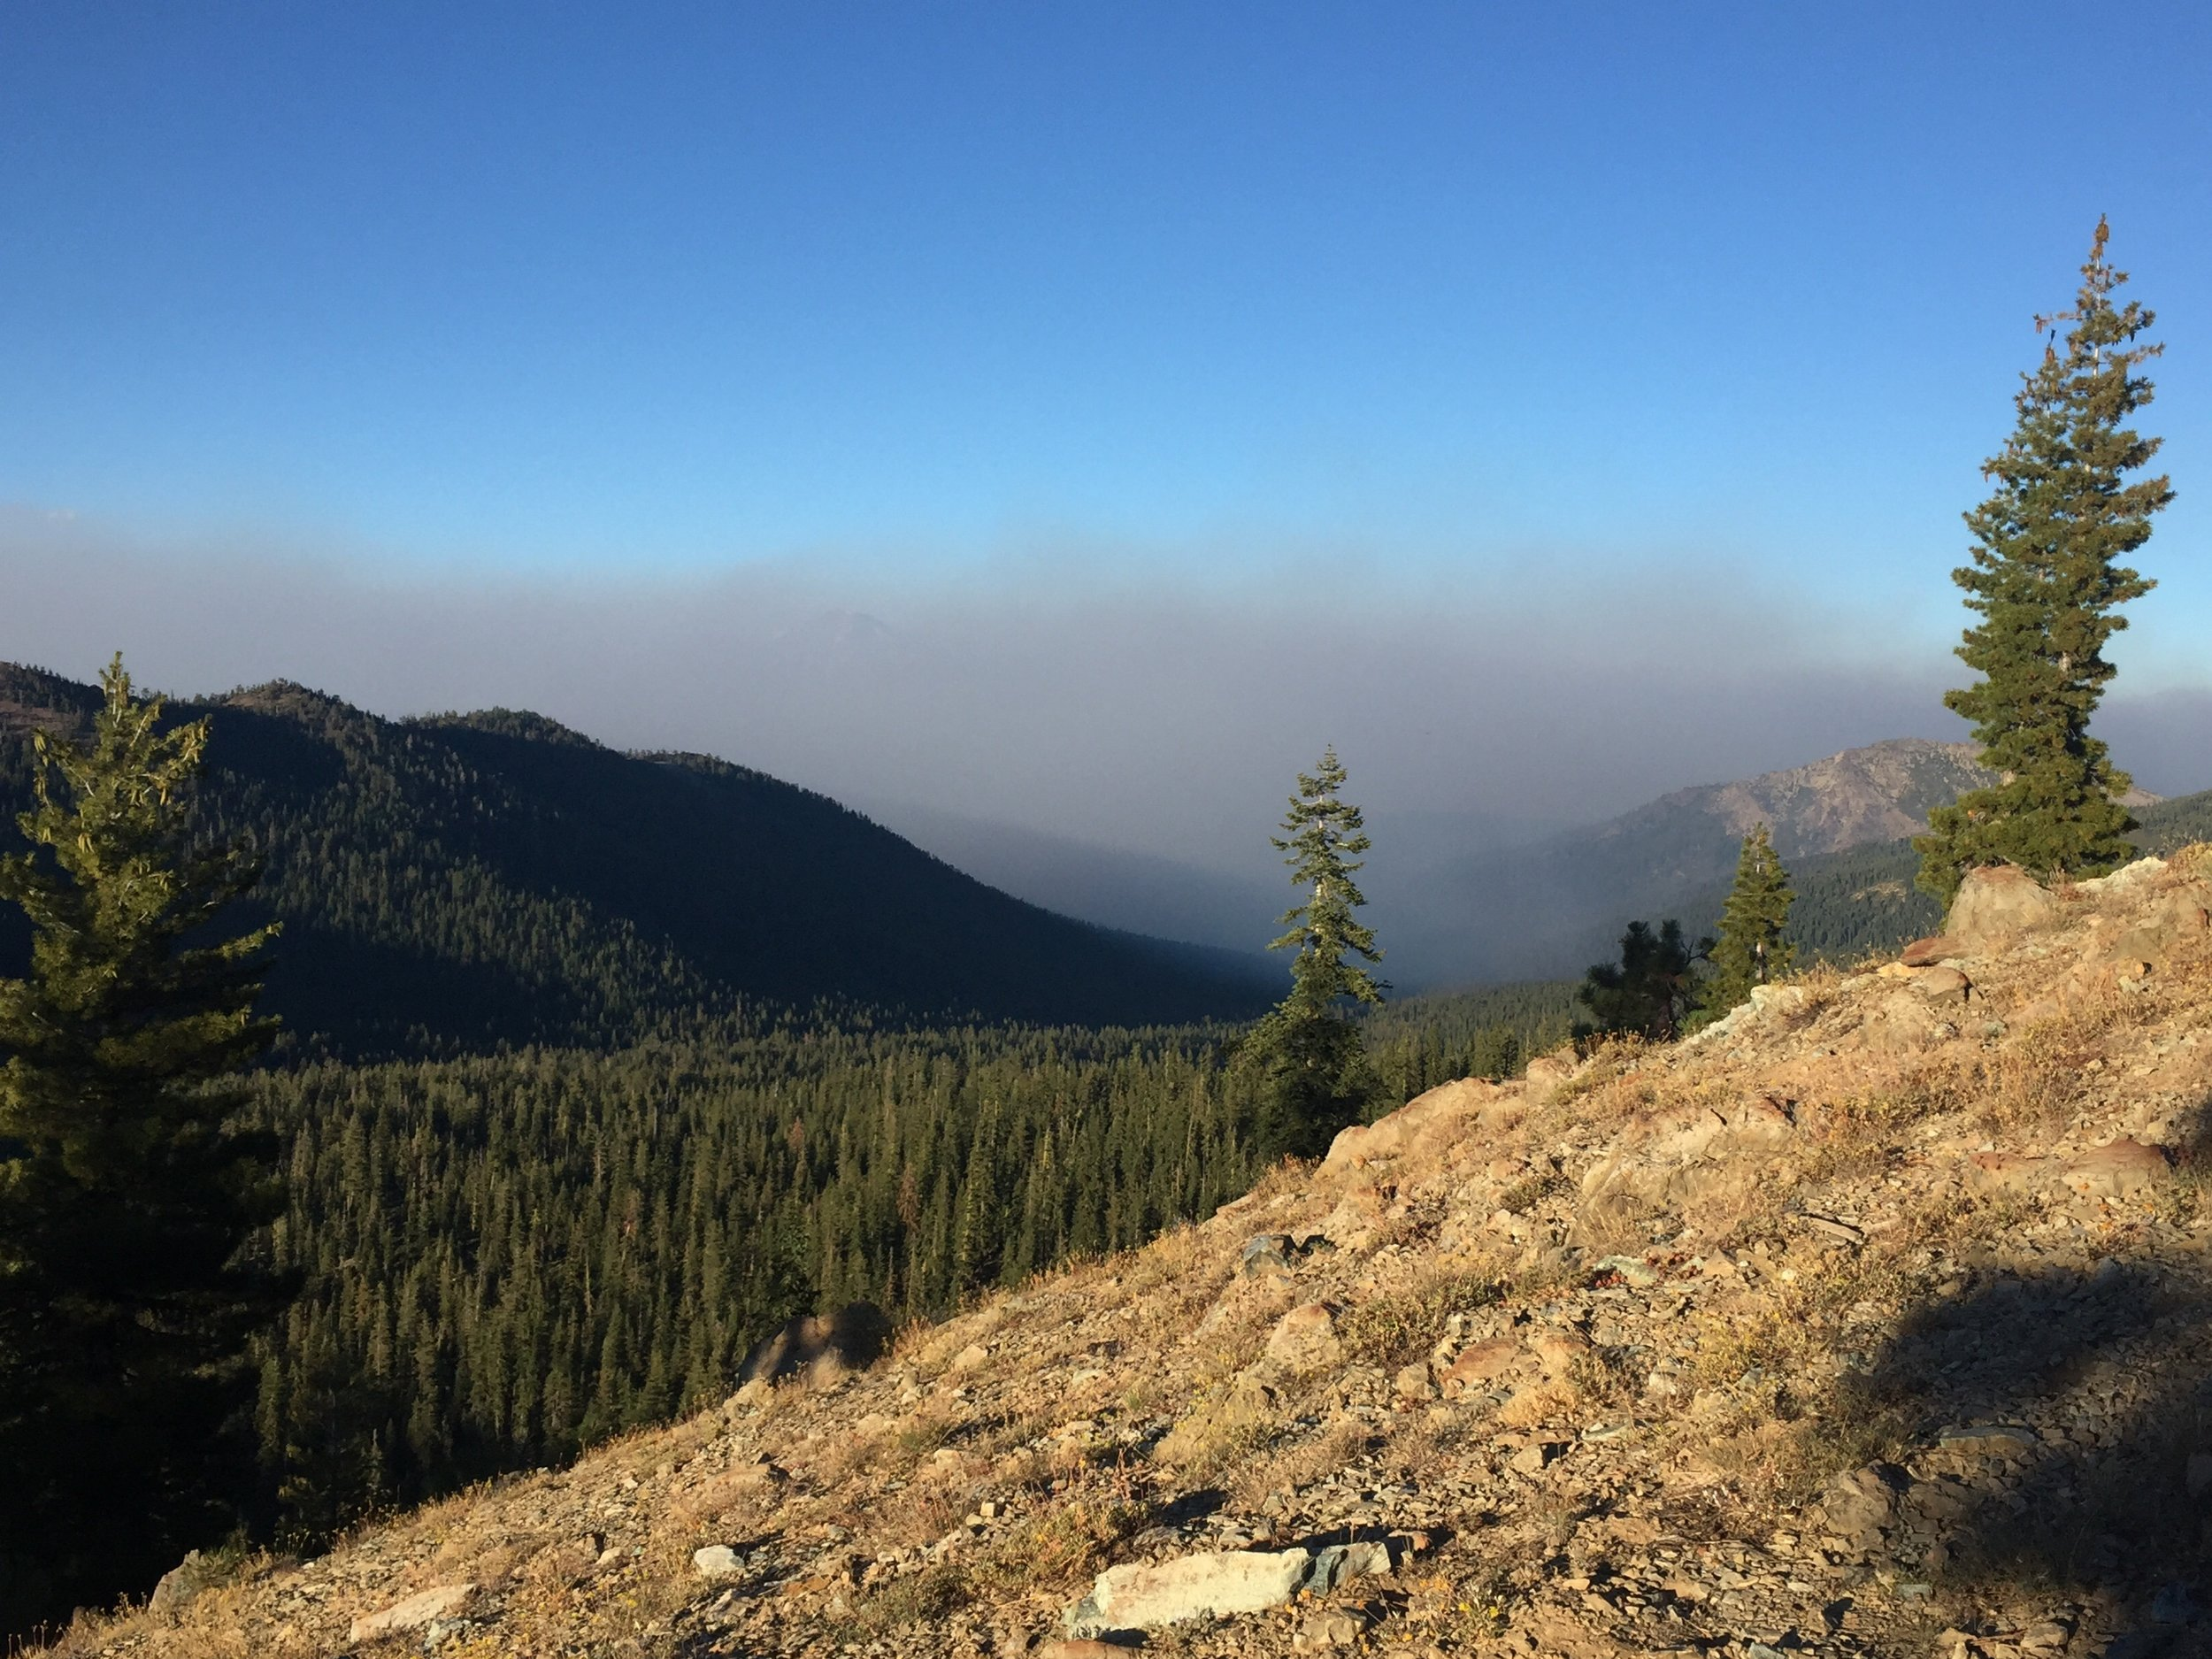 Thick smoke billowed into the valley over the course of 30 minutes, obscuring our view of Mt. Shasta